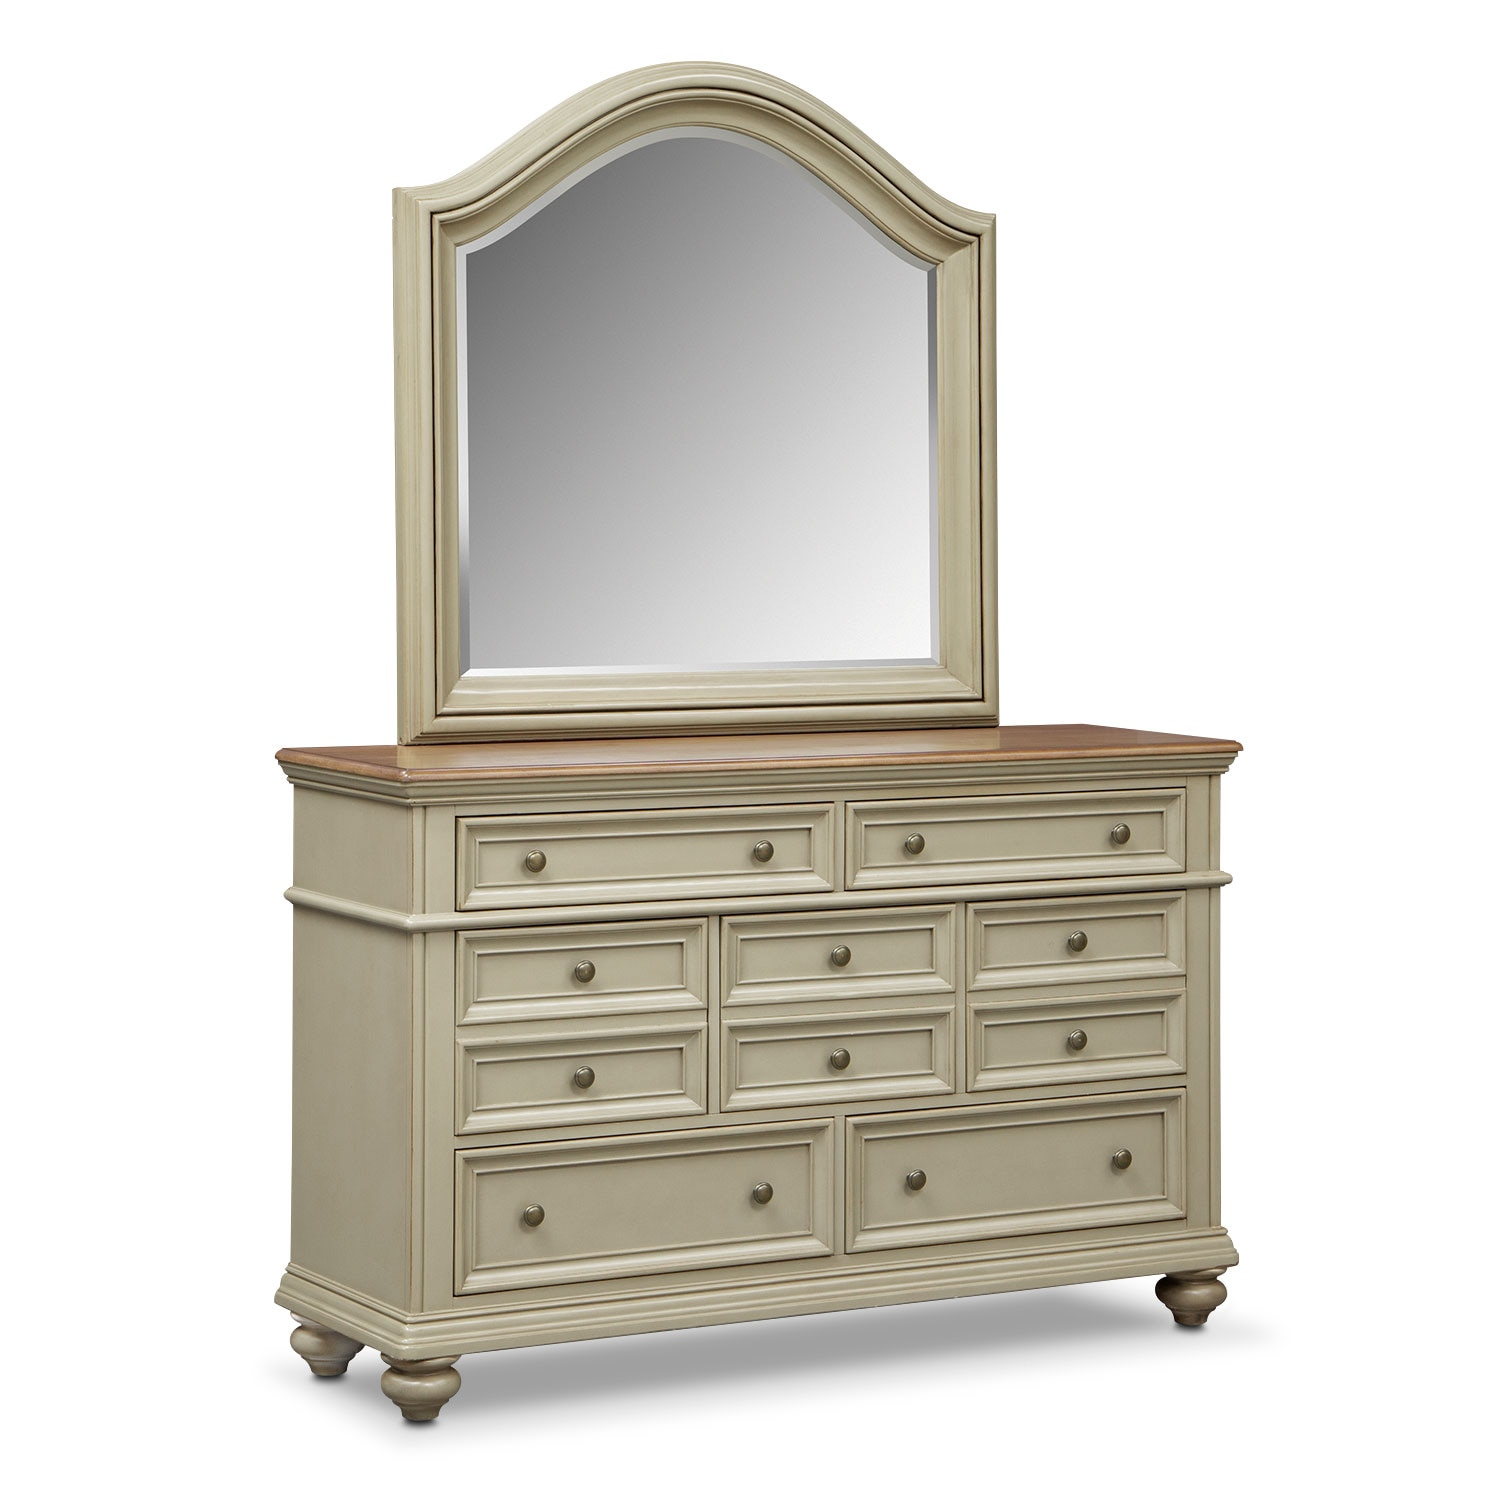 East Hampton Dresser and Mirror - Sage